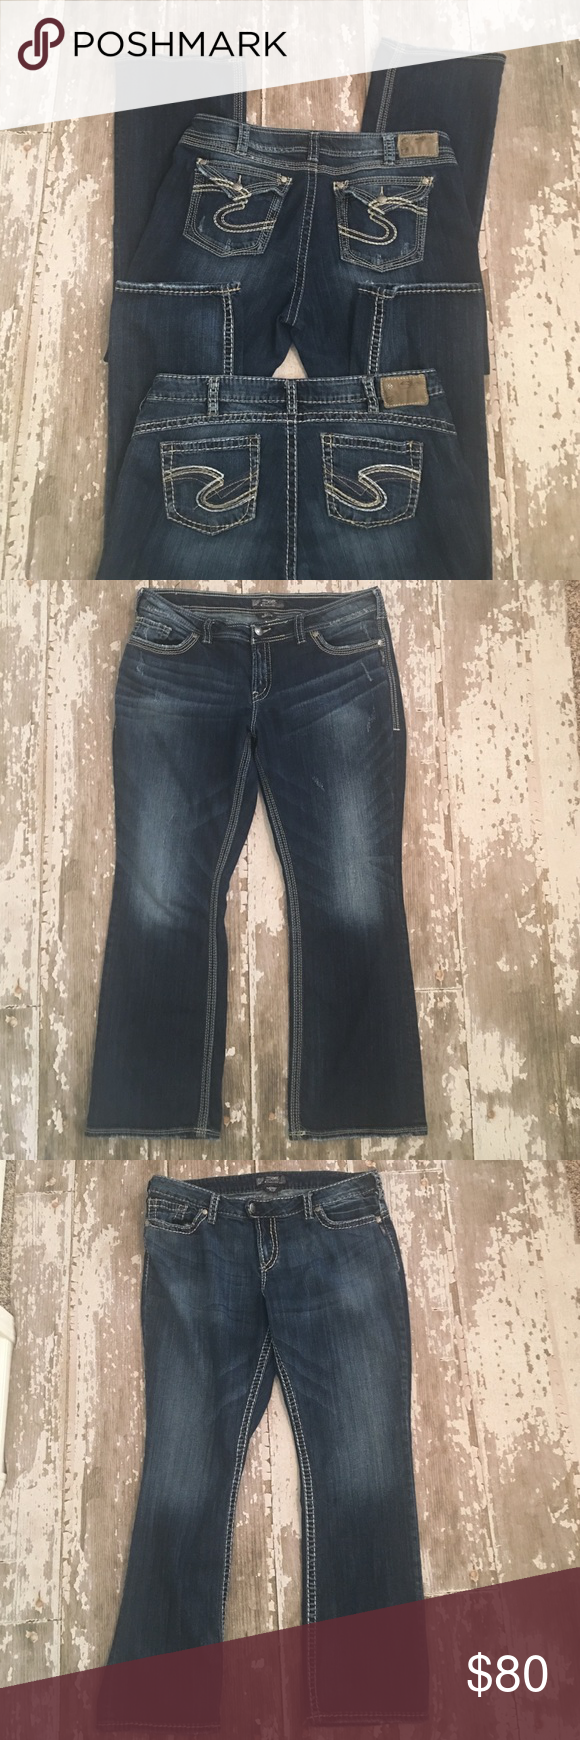 💙Silver Jeans Lot of 2 💙 Size 20 Women's Plus💙 | Stitching ...